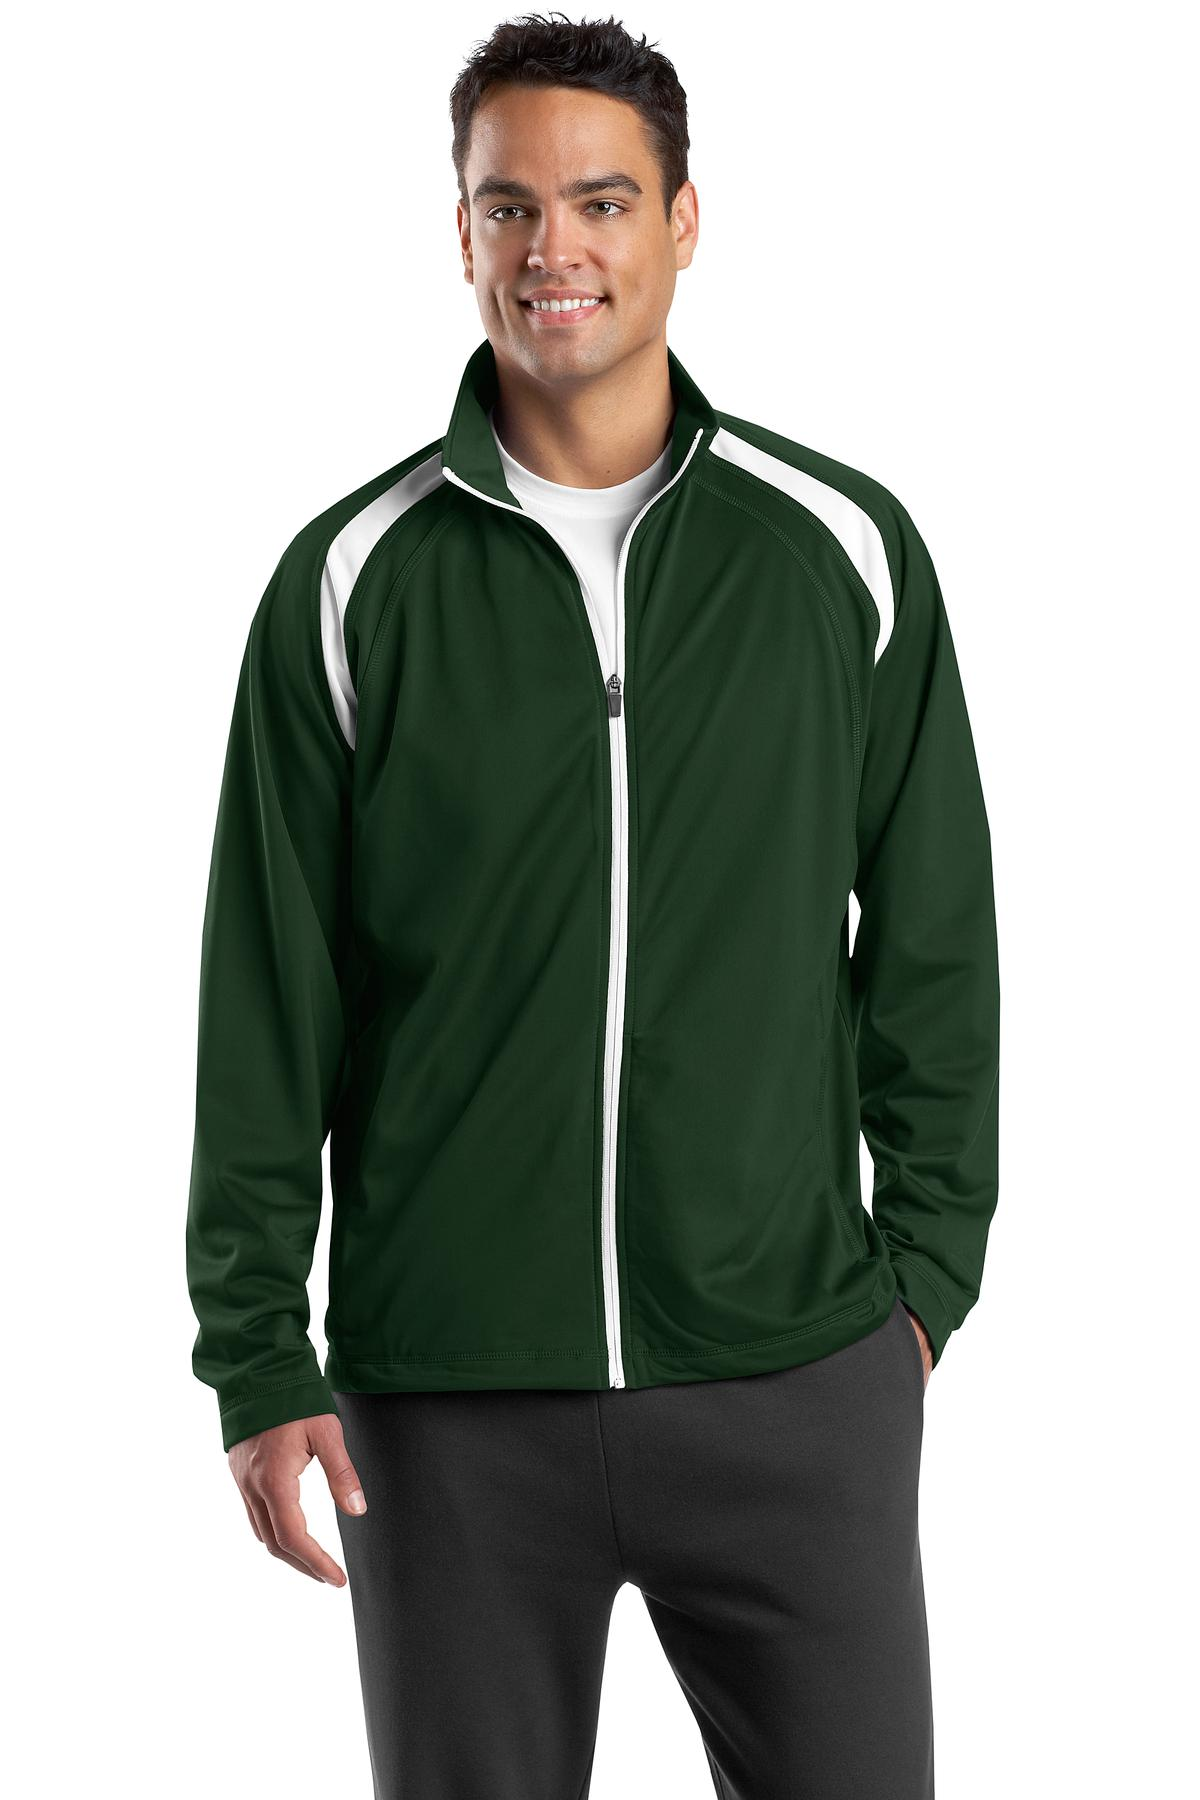 Outerwear-Athletic-Warm-Ups-19